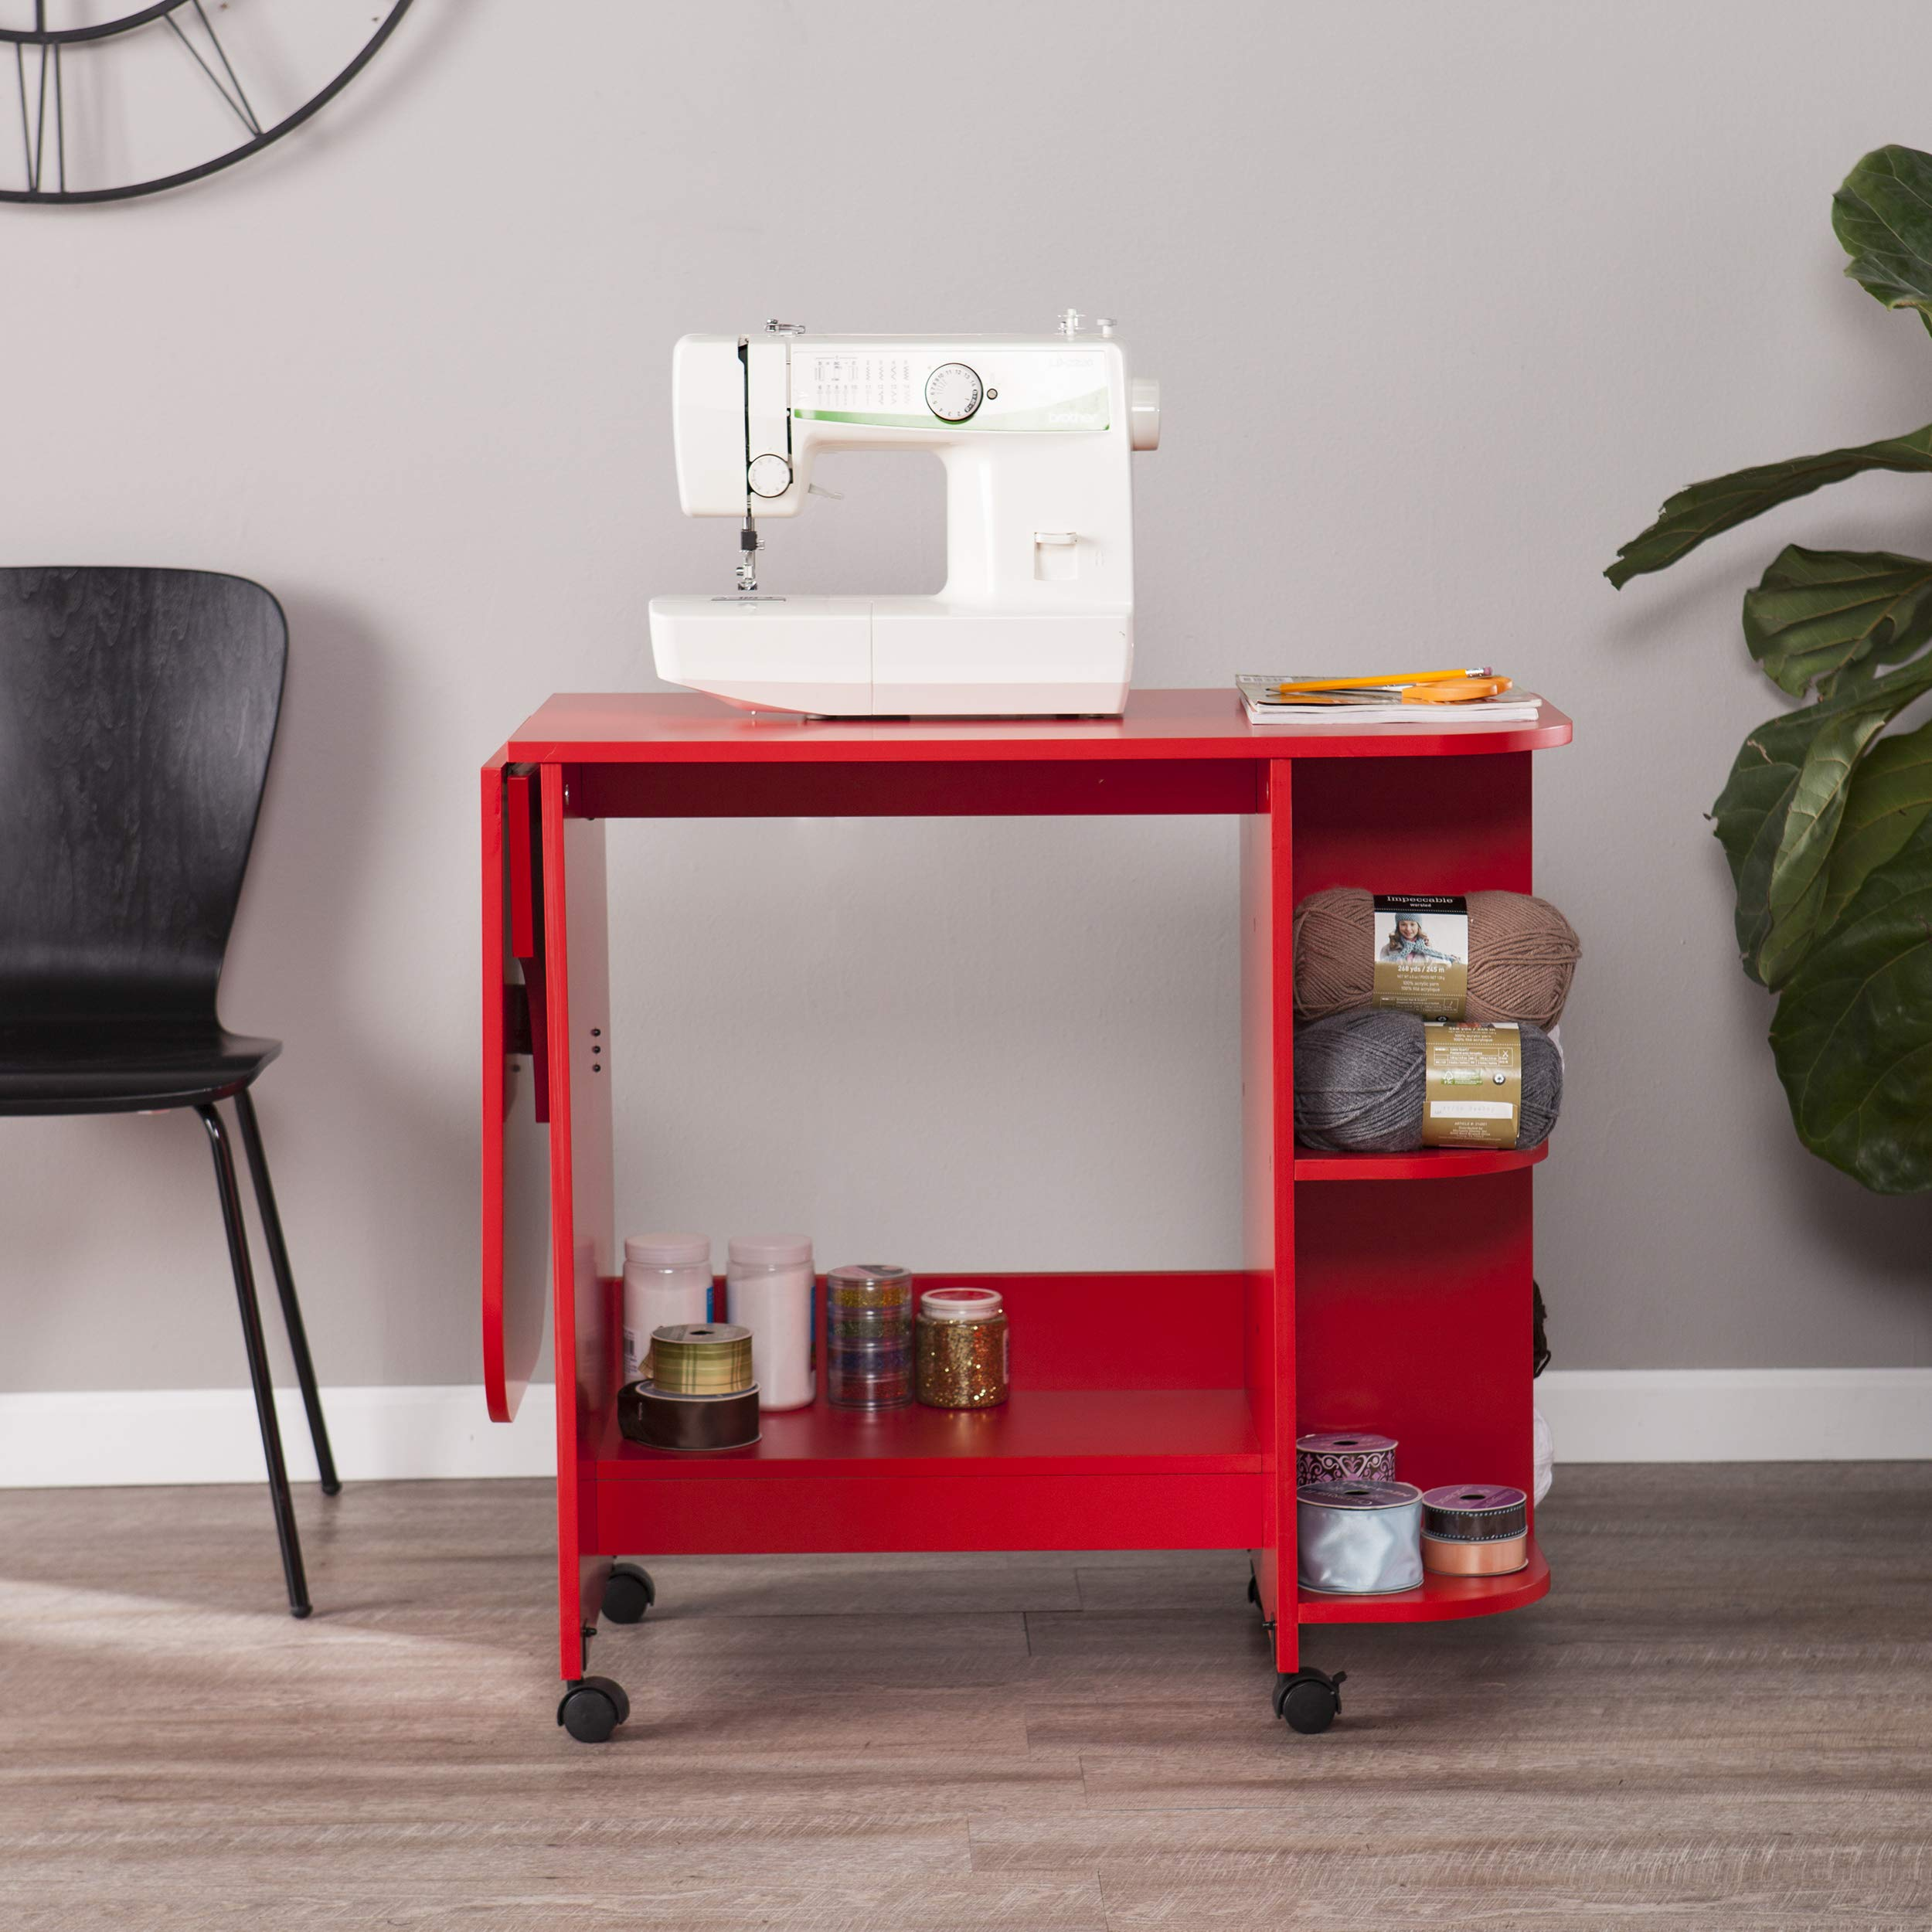 Southern Enterprises AMZ5667ZH Expandable Rolling Sewing Station Craft Table, Red